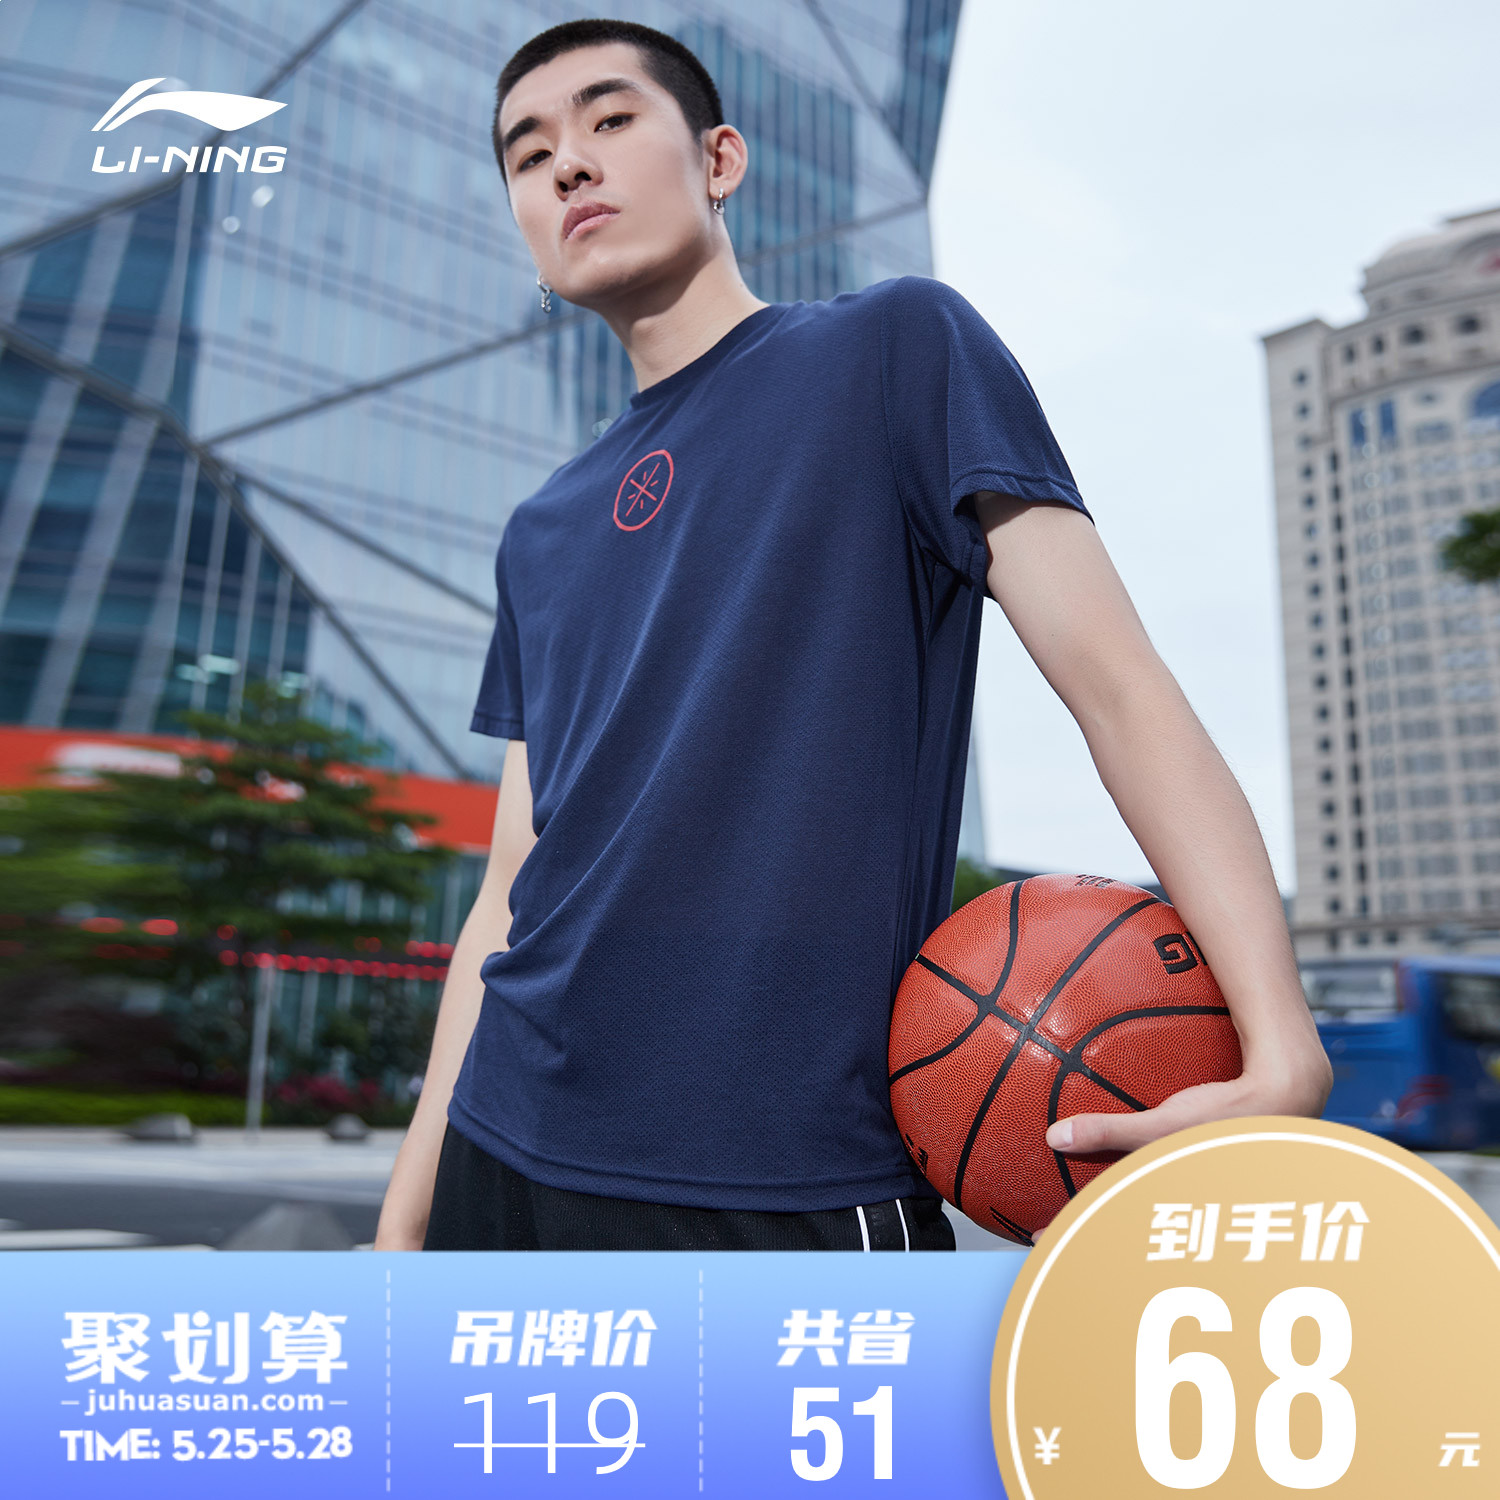 Li Ning short sleeve t-shirt men's Wade T-shirt summer round neck quick drying breathable running fitness half sleeve top